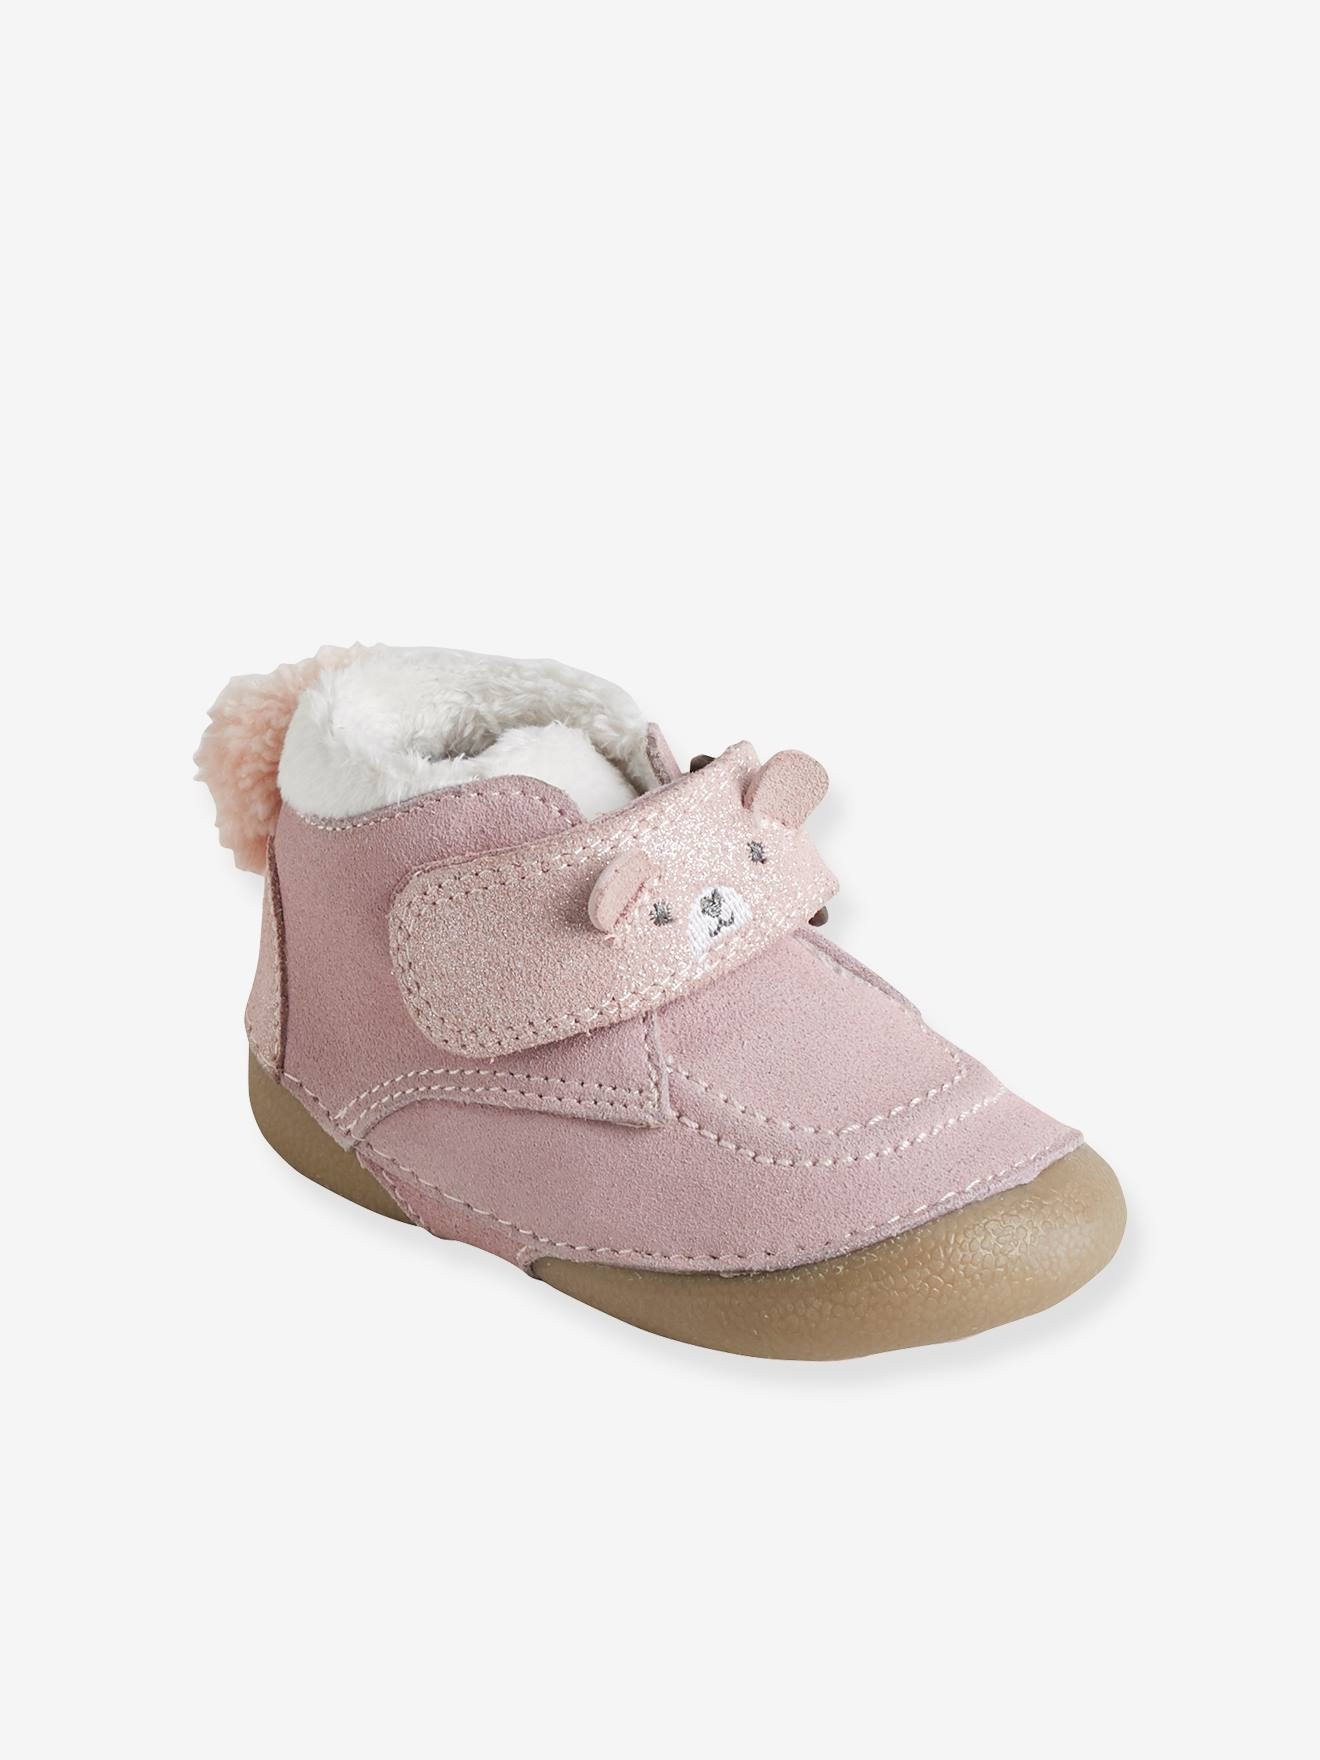 Soft Leather Shoes with Fur for Babies